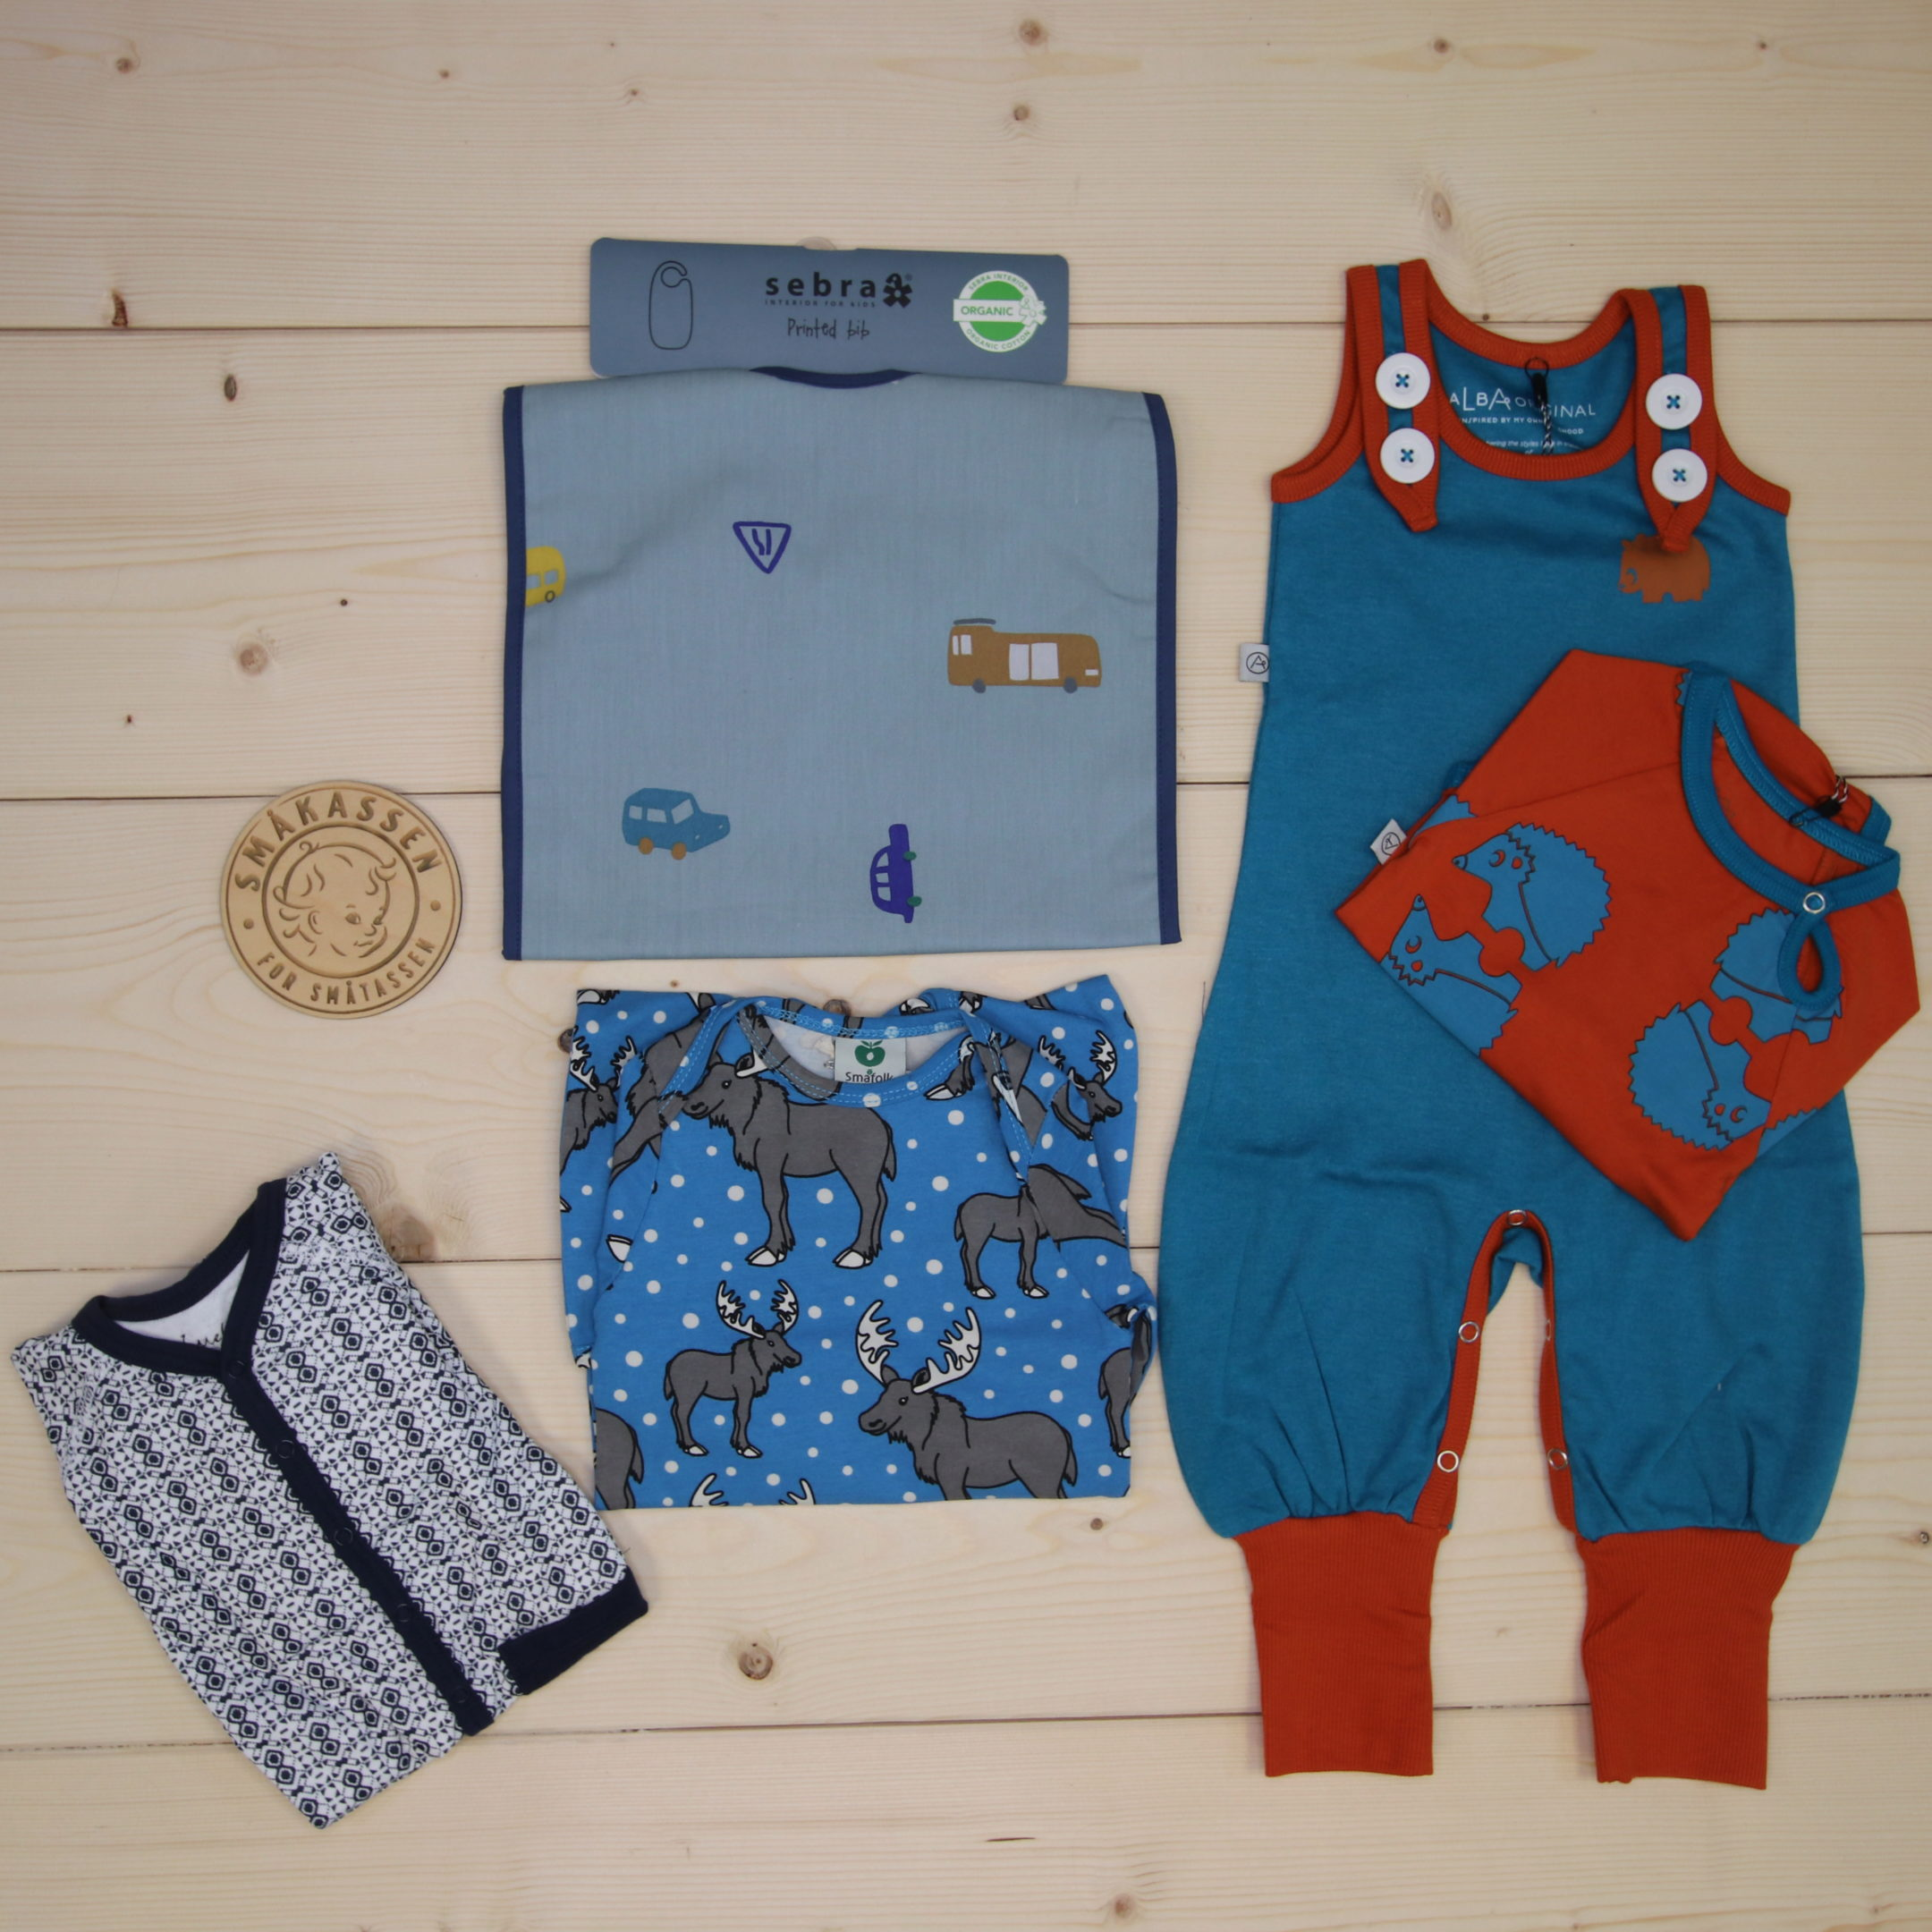 This is a 125 GBP* Småkassen that we prepared for a boy  in the styles cute and cool in size 62